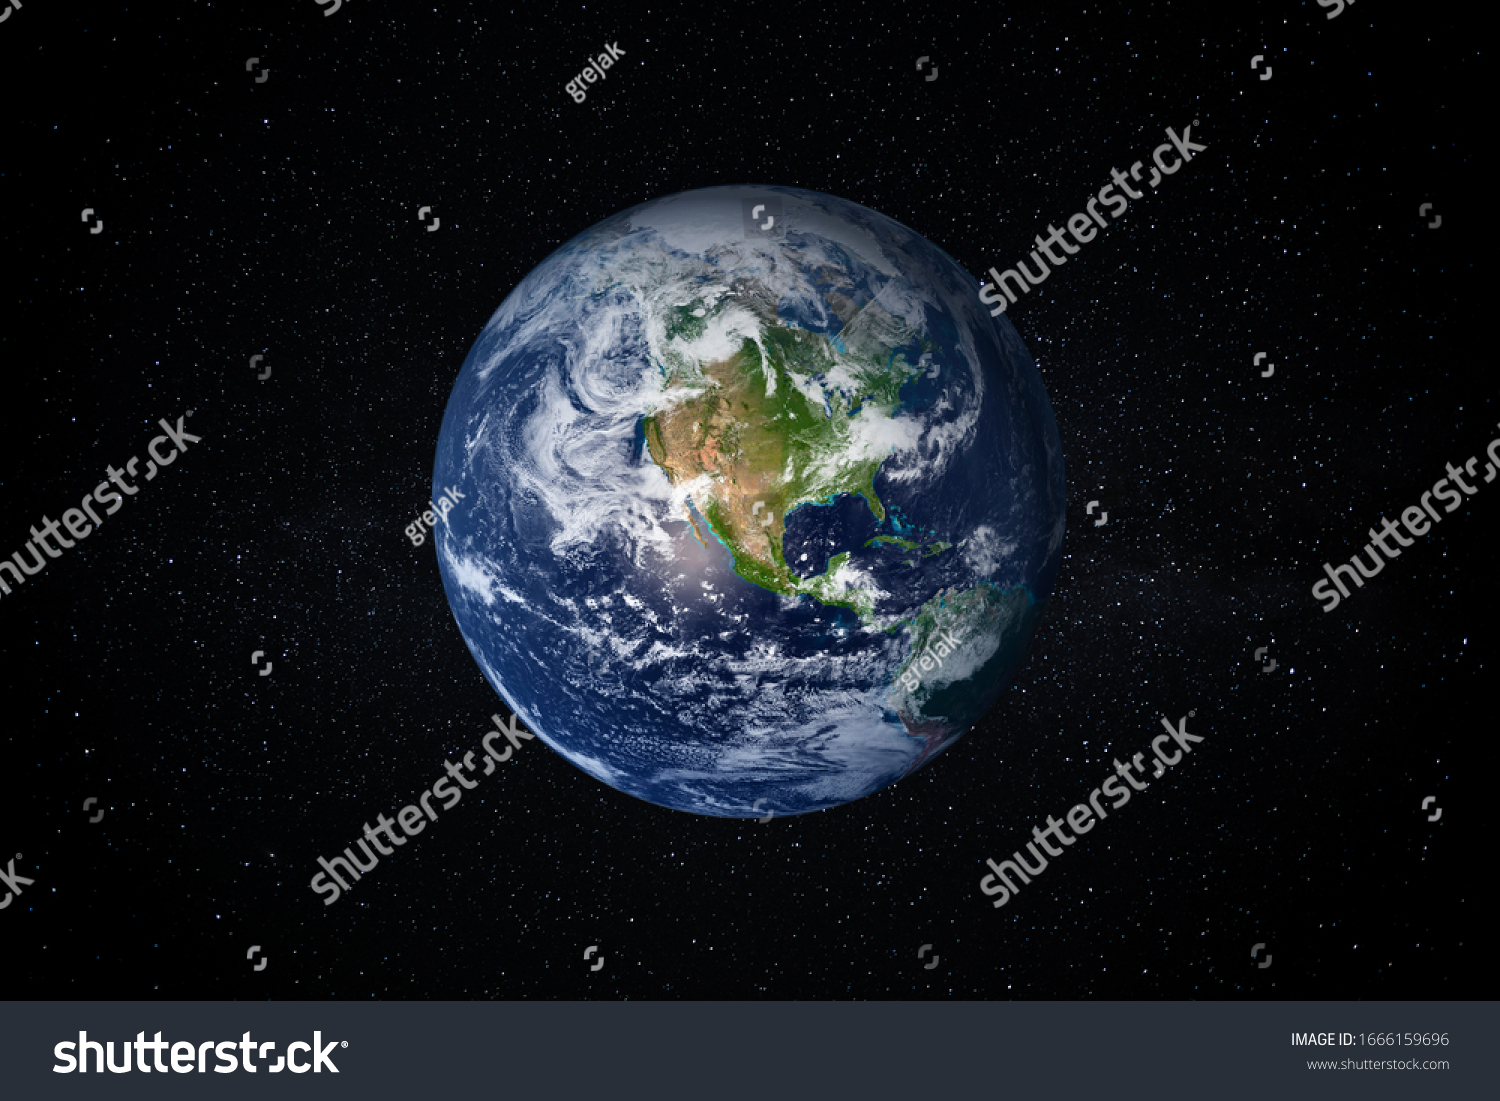 Planet Earth in the Starry Sky of Solar System in Space. This image elements furnished by NASA. #1666159696